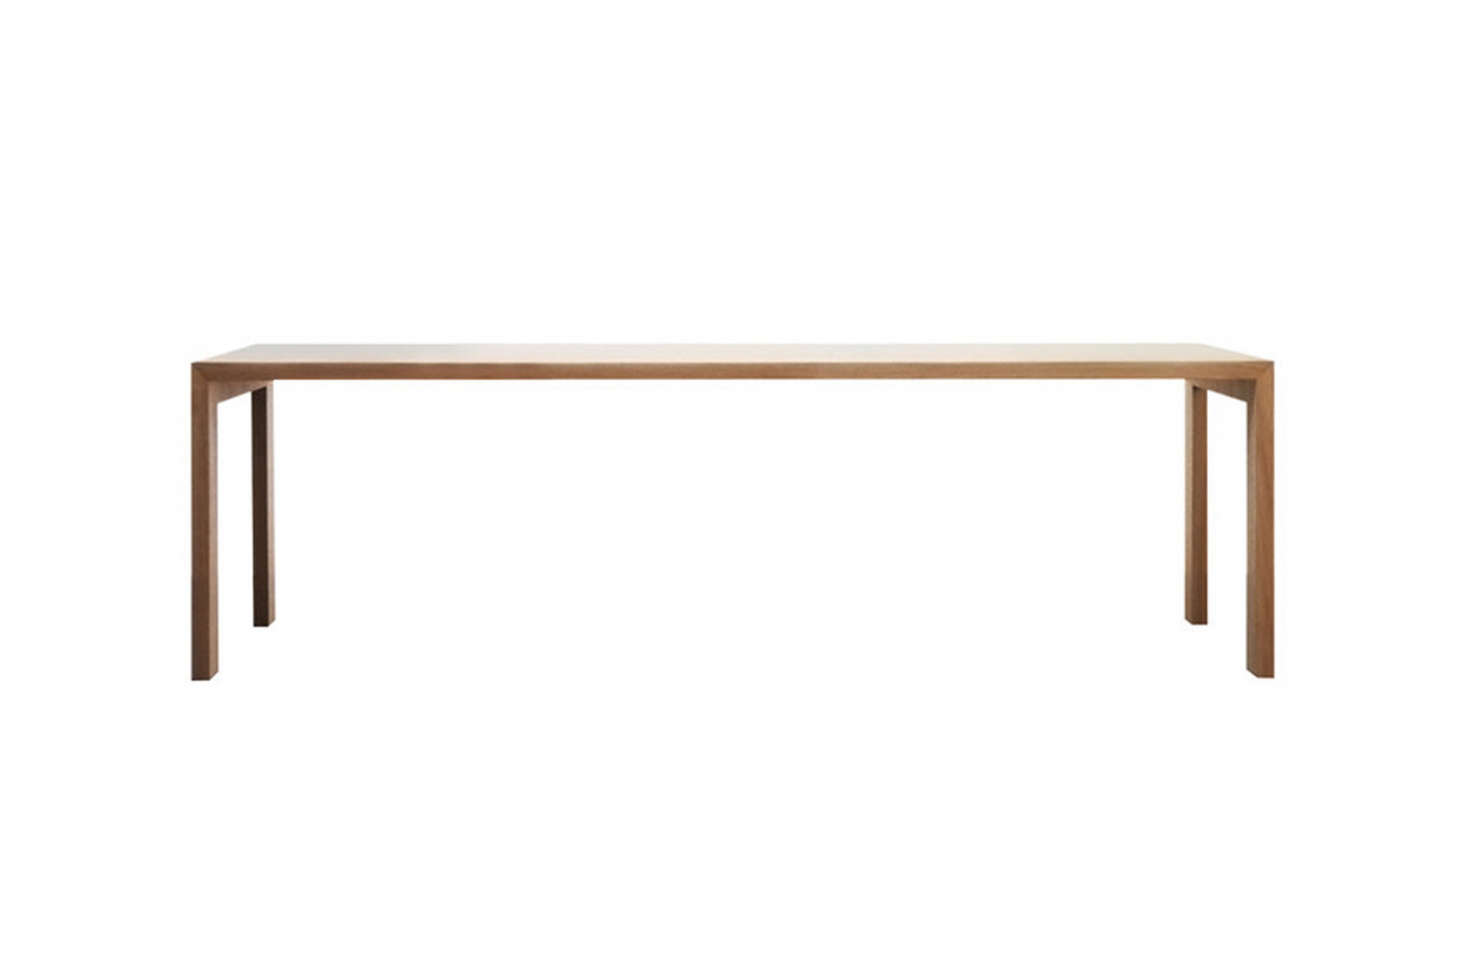 TheGamma Table by Jasper Morrison for Cappellini is available in oak or lacquer, in 12 finishes; £3,980 ($5,240) at TwentyTwentyOne.